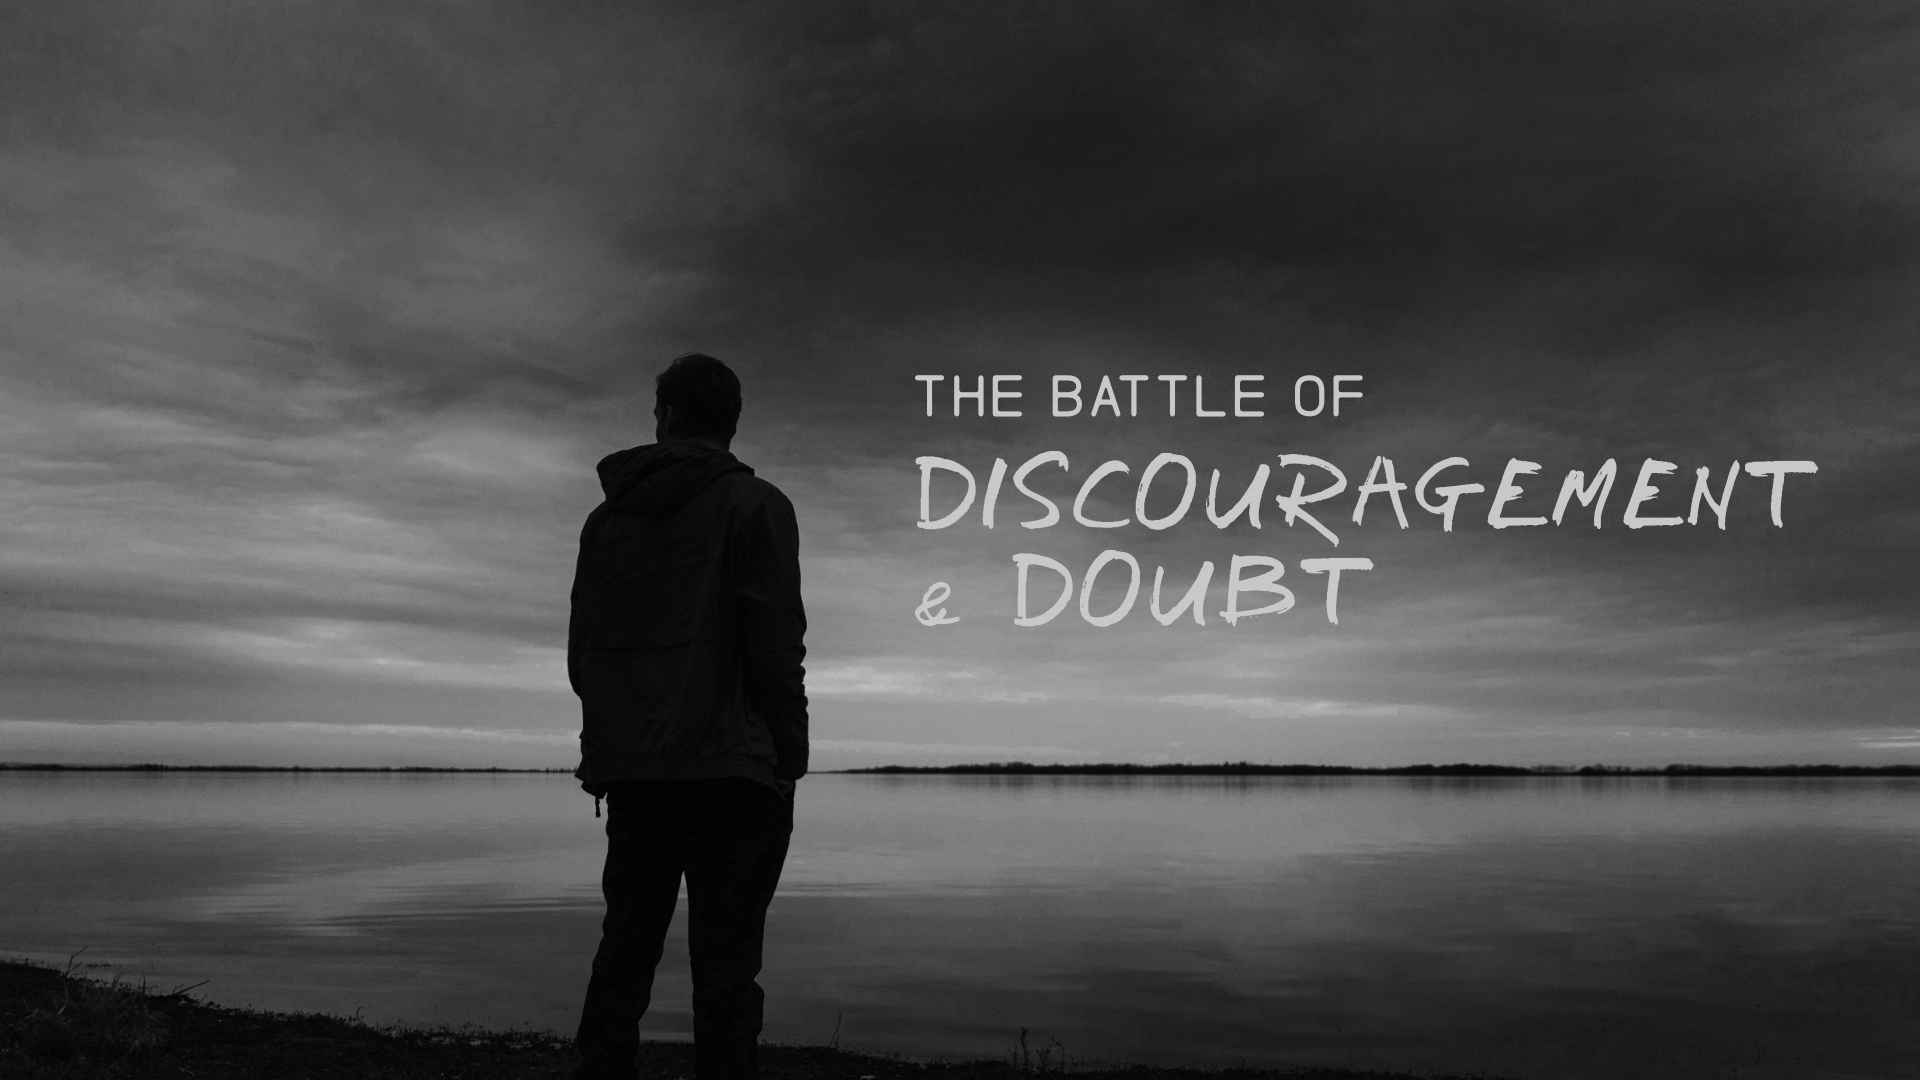 2019-04-14 - The Battle of Discouragement and Doubt.jpg